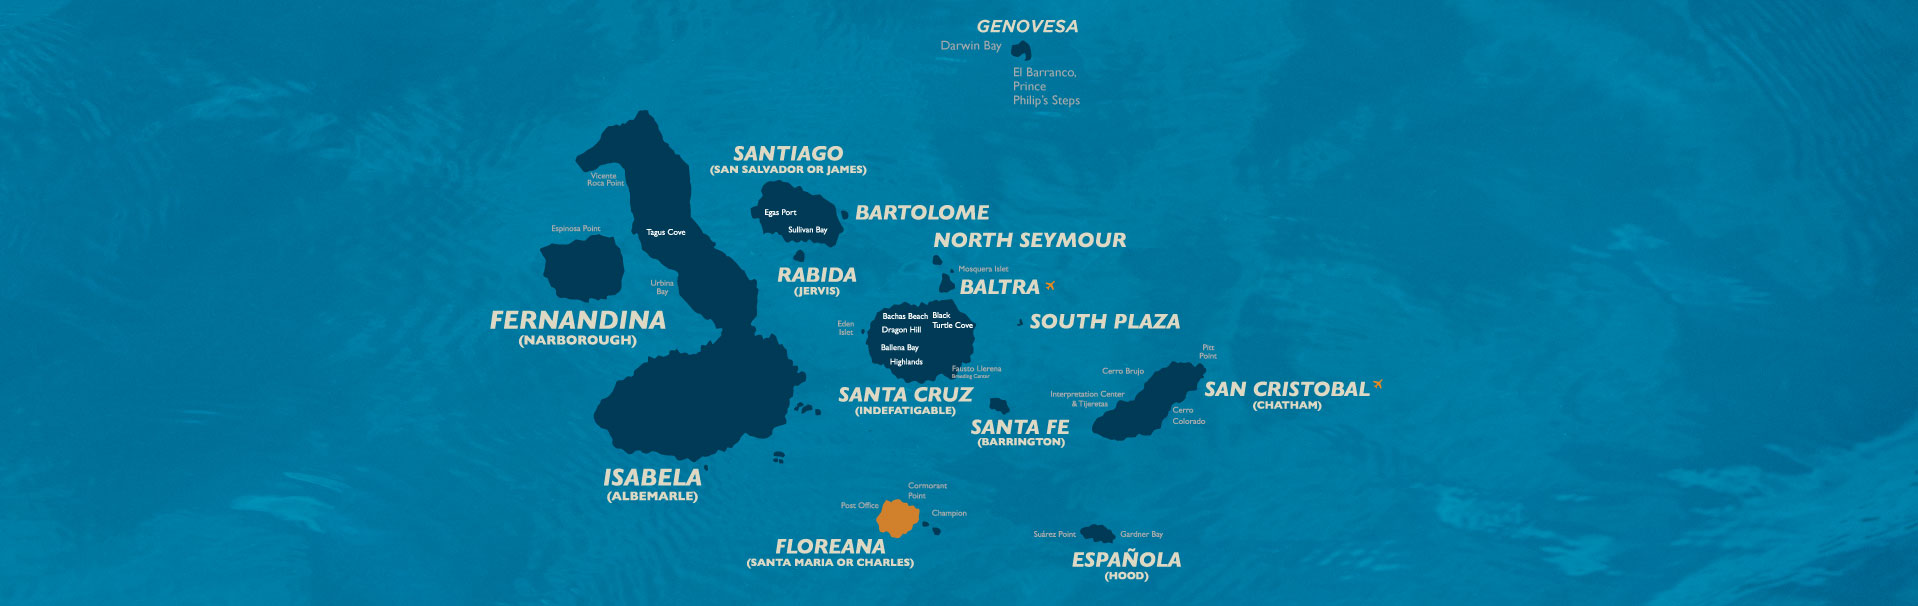 Galapagos Islands map, Floreana marked